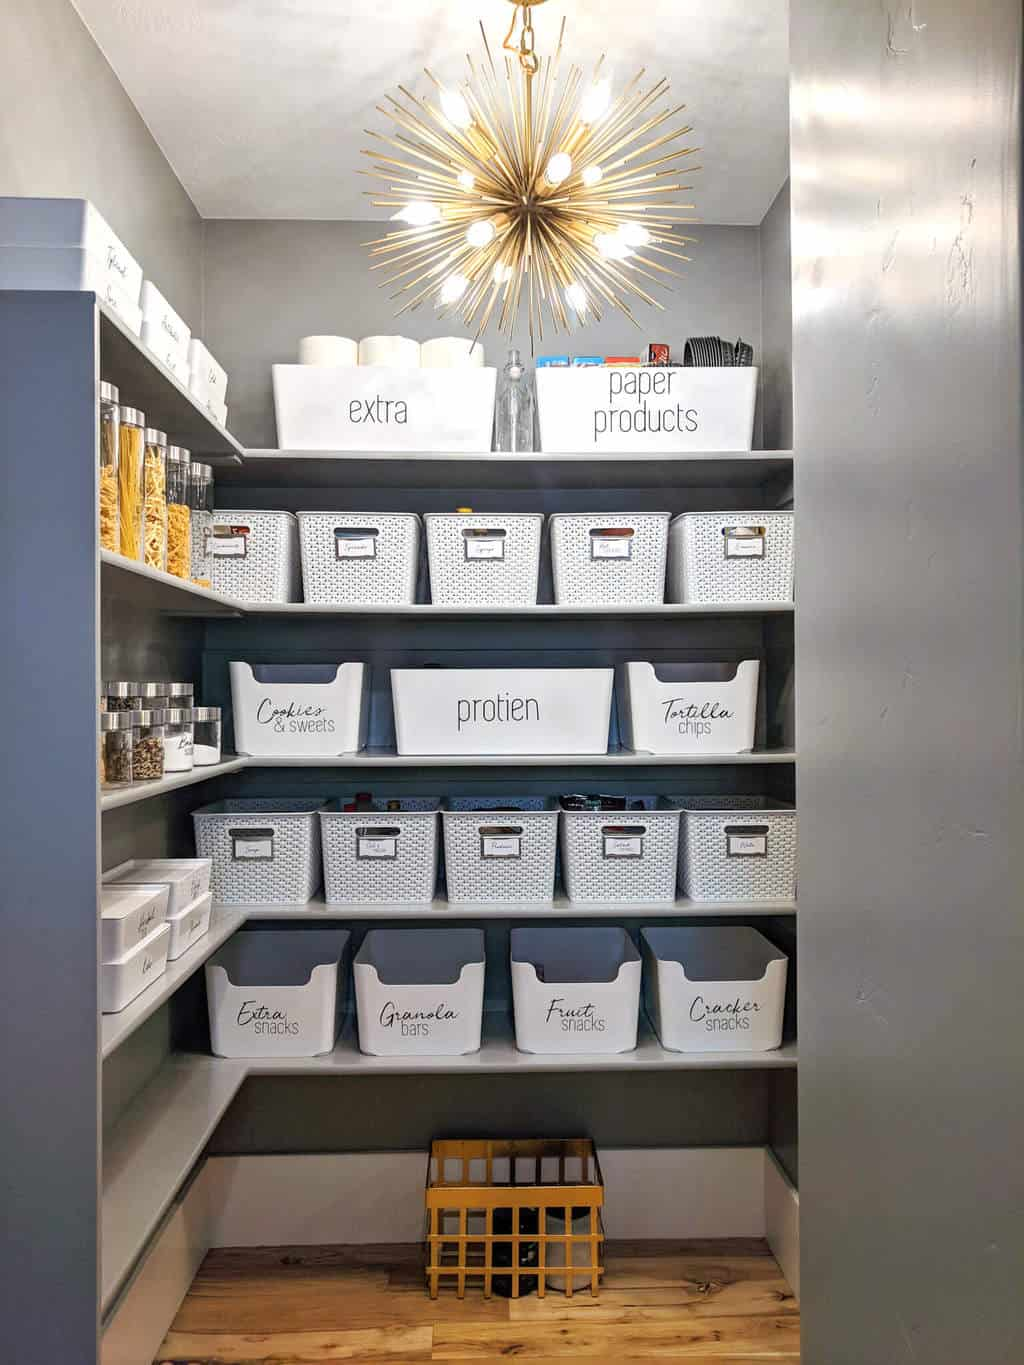 A Step-by-Step Pantry Organization Guide